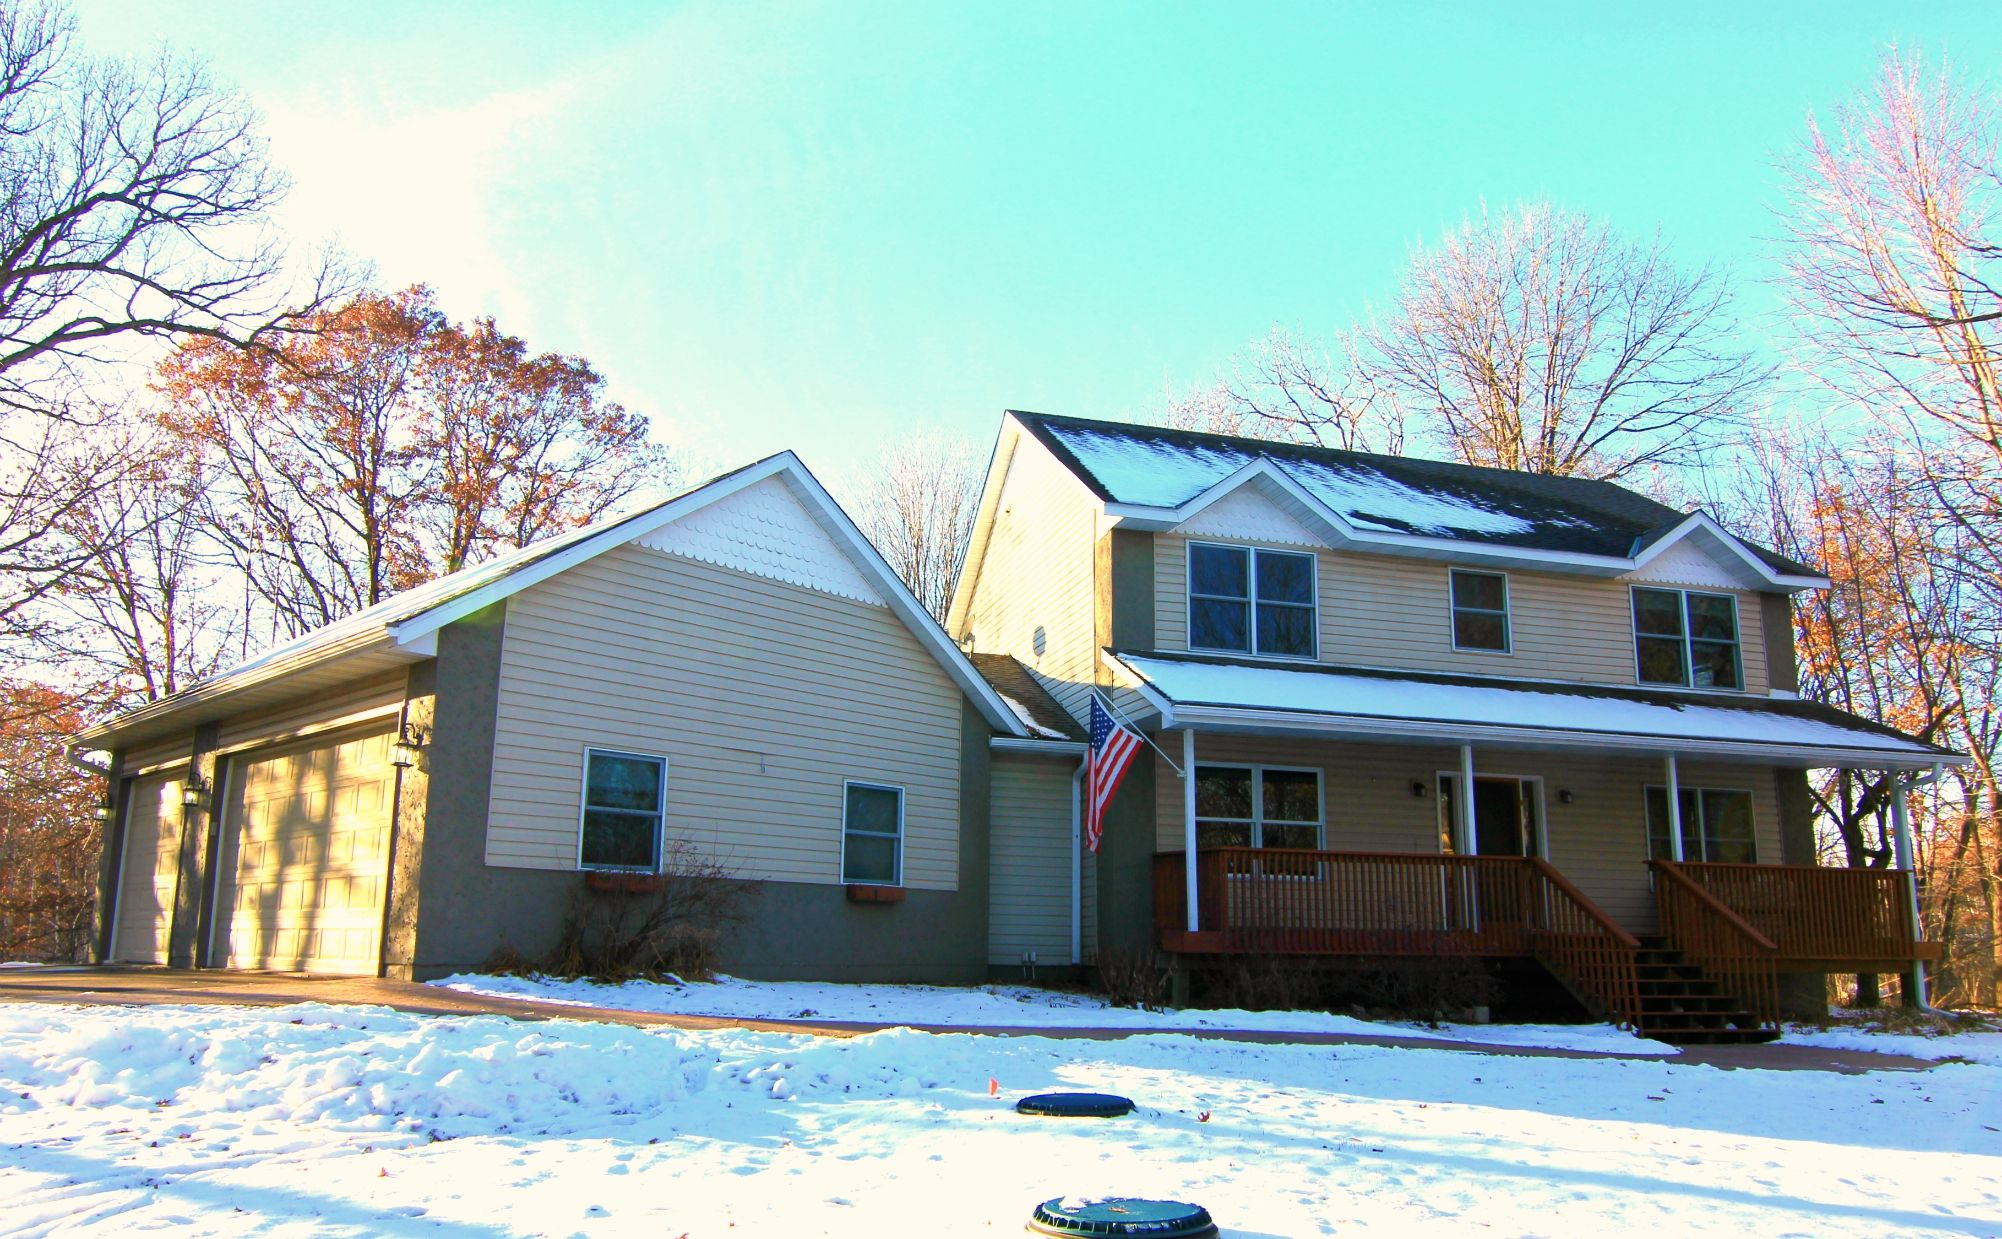 SOLD! 17560 Durant St NE, Ham Lake MN 55304 (With images